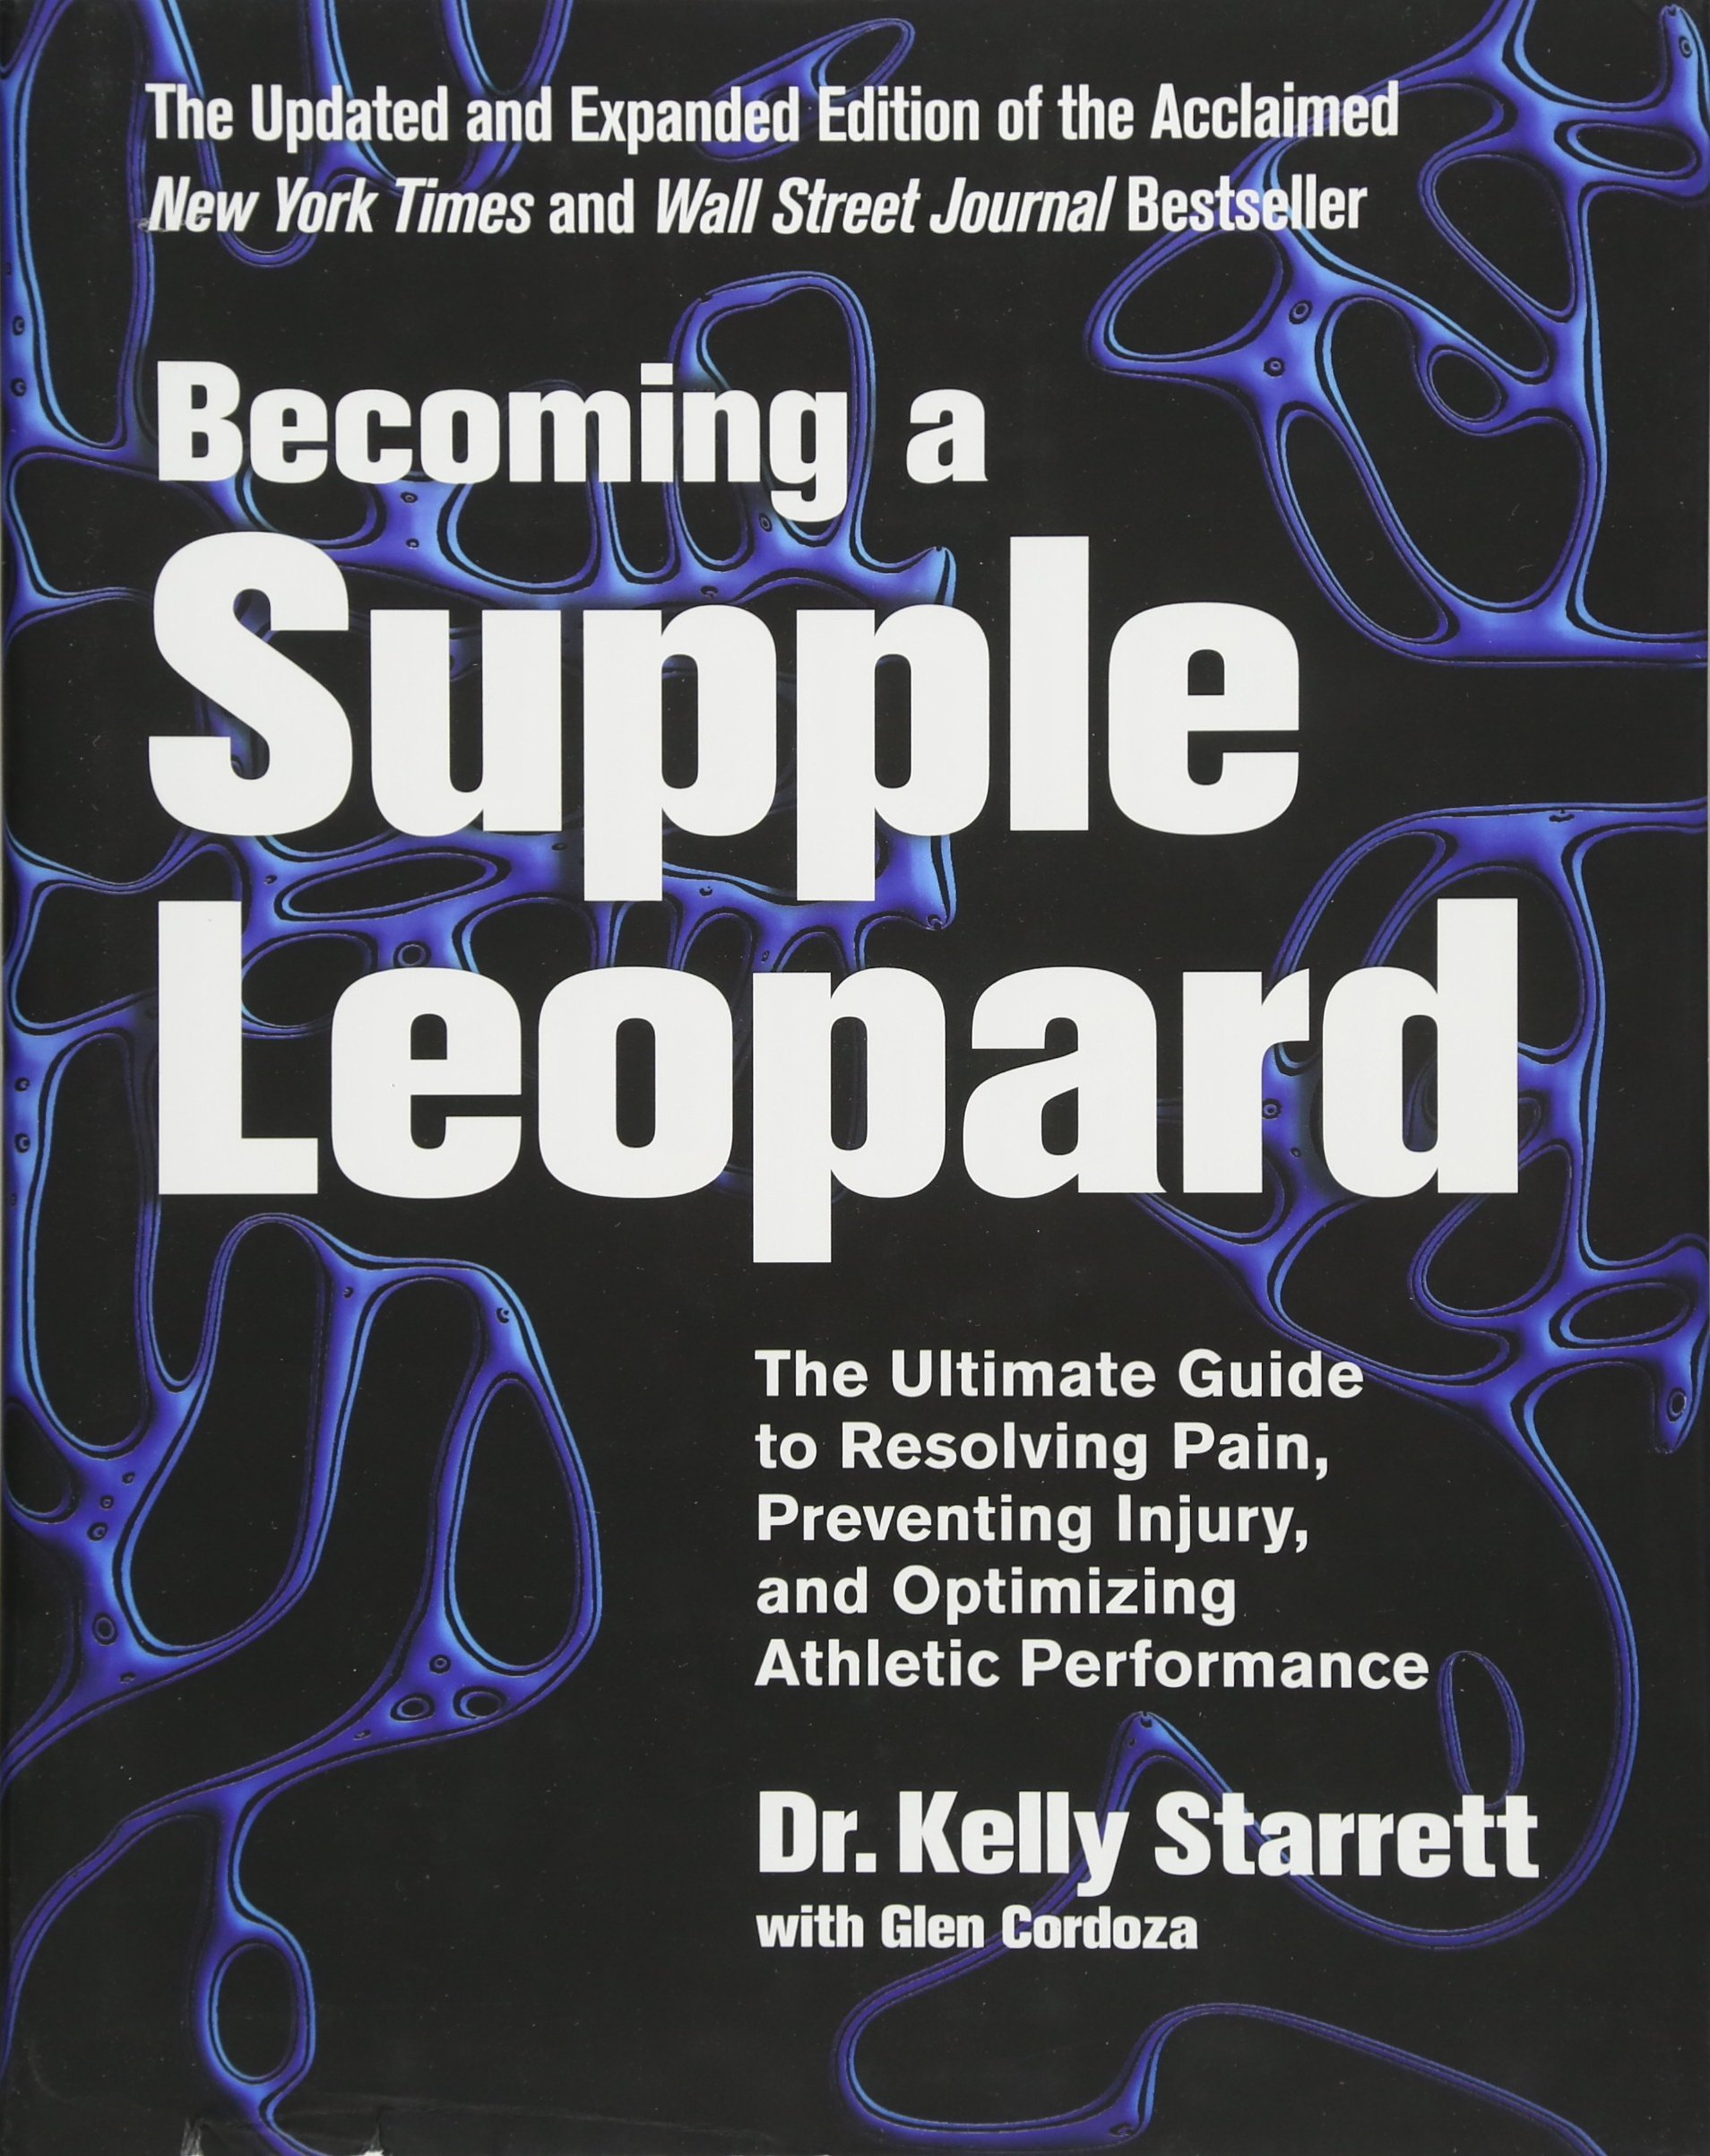 Recommendation - Becoming a Supple Leopard